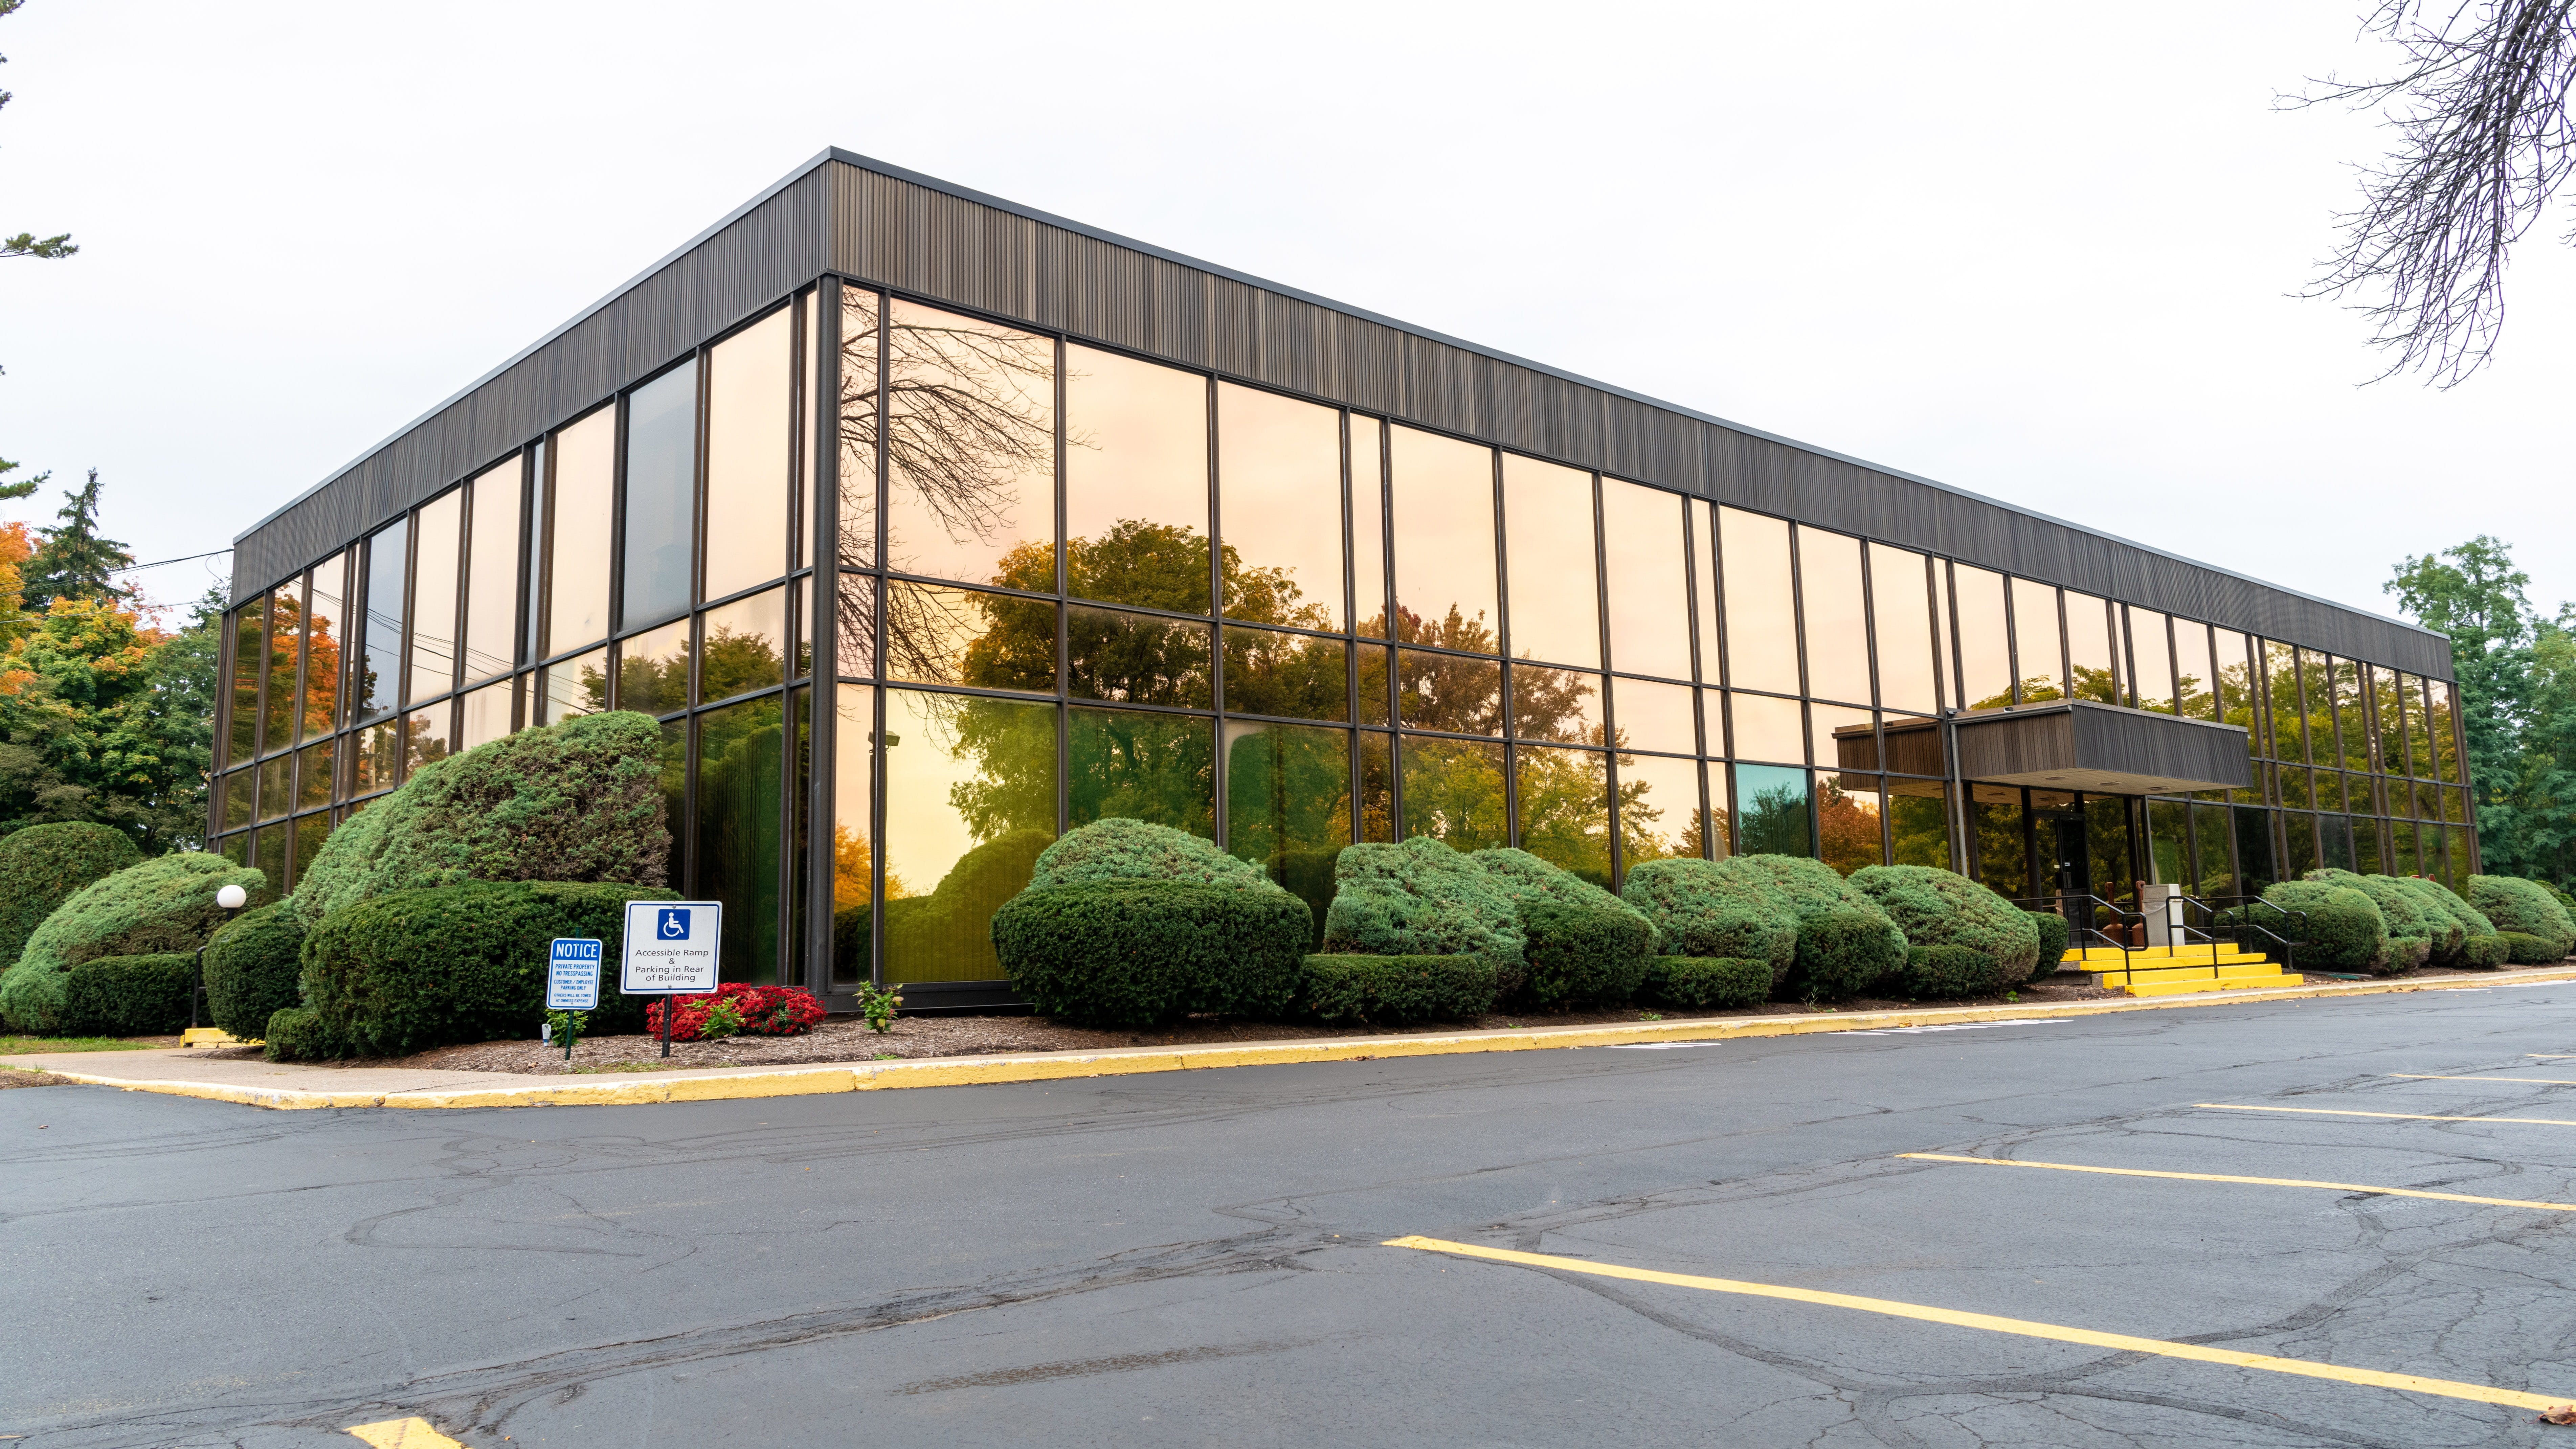 Exterior view of 80 West Avenue in Brockport, NY